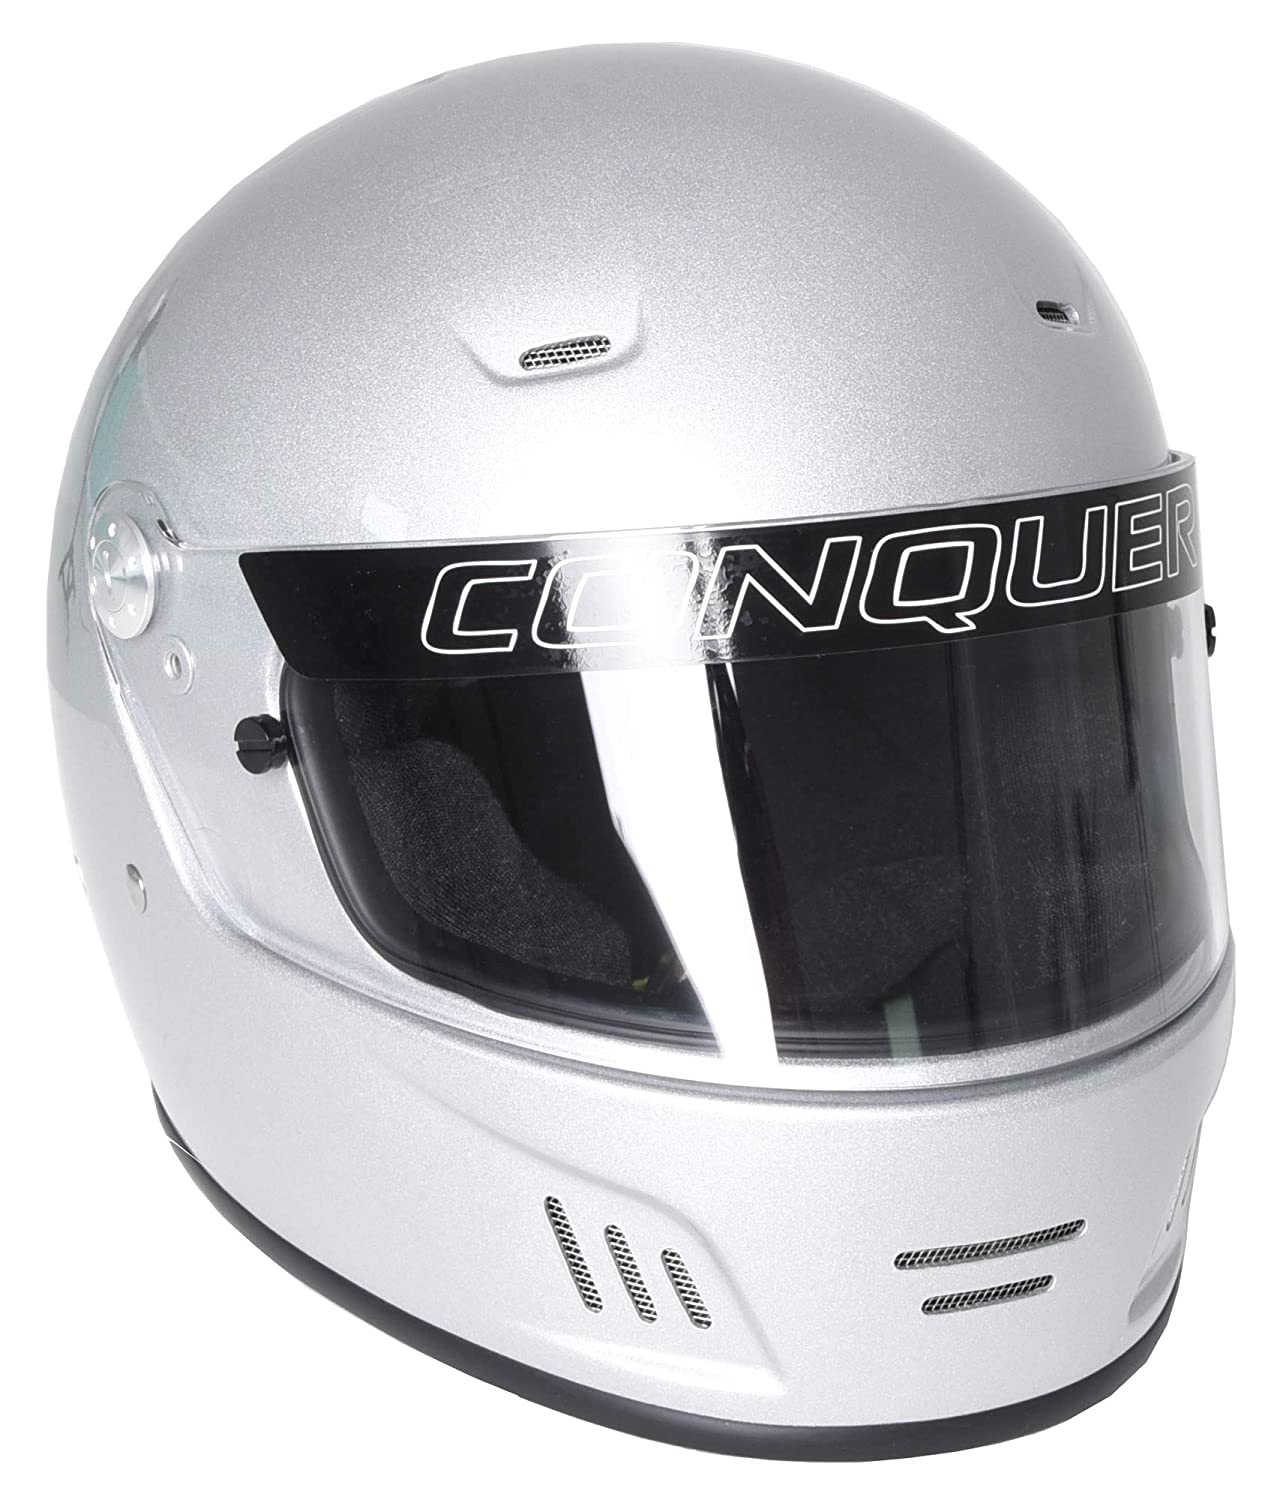 Conquer 350-FF-SA15-SIL-M Silver Medium Snell SA2015 Approved Full Face Auto Racing Helmet, 1 (Non-Carb Compliant)